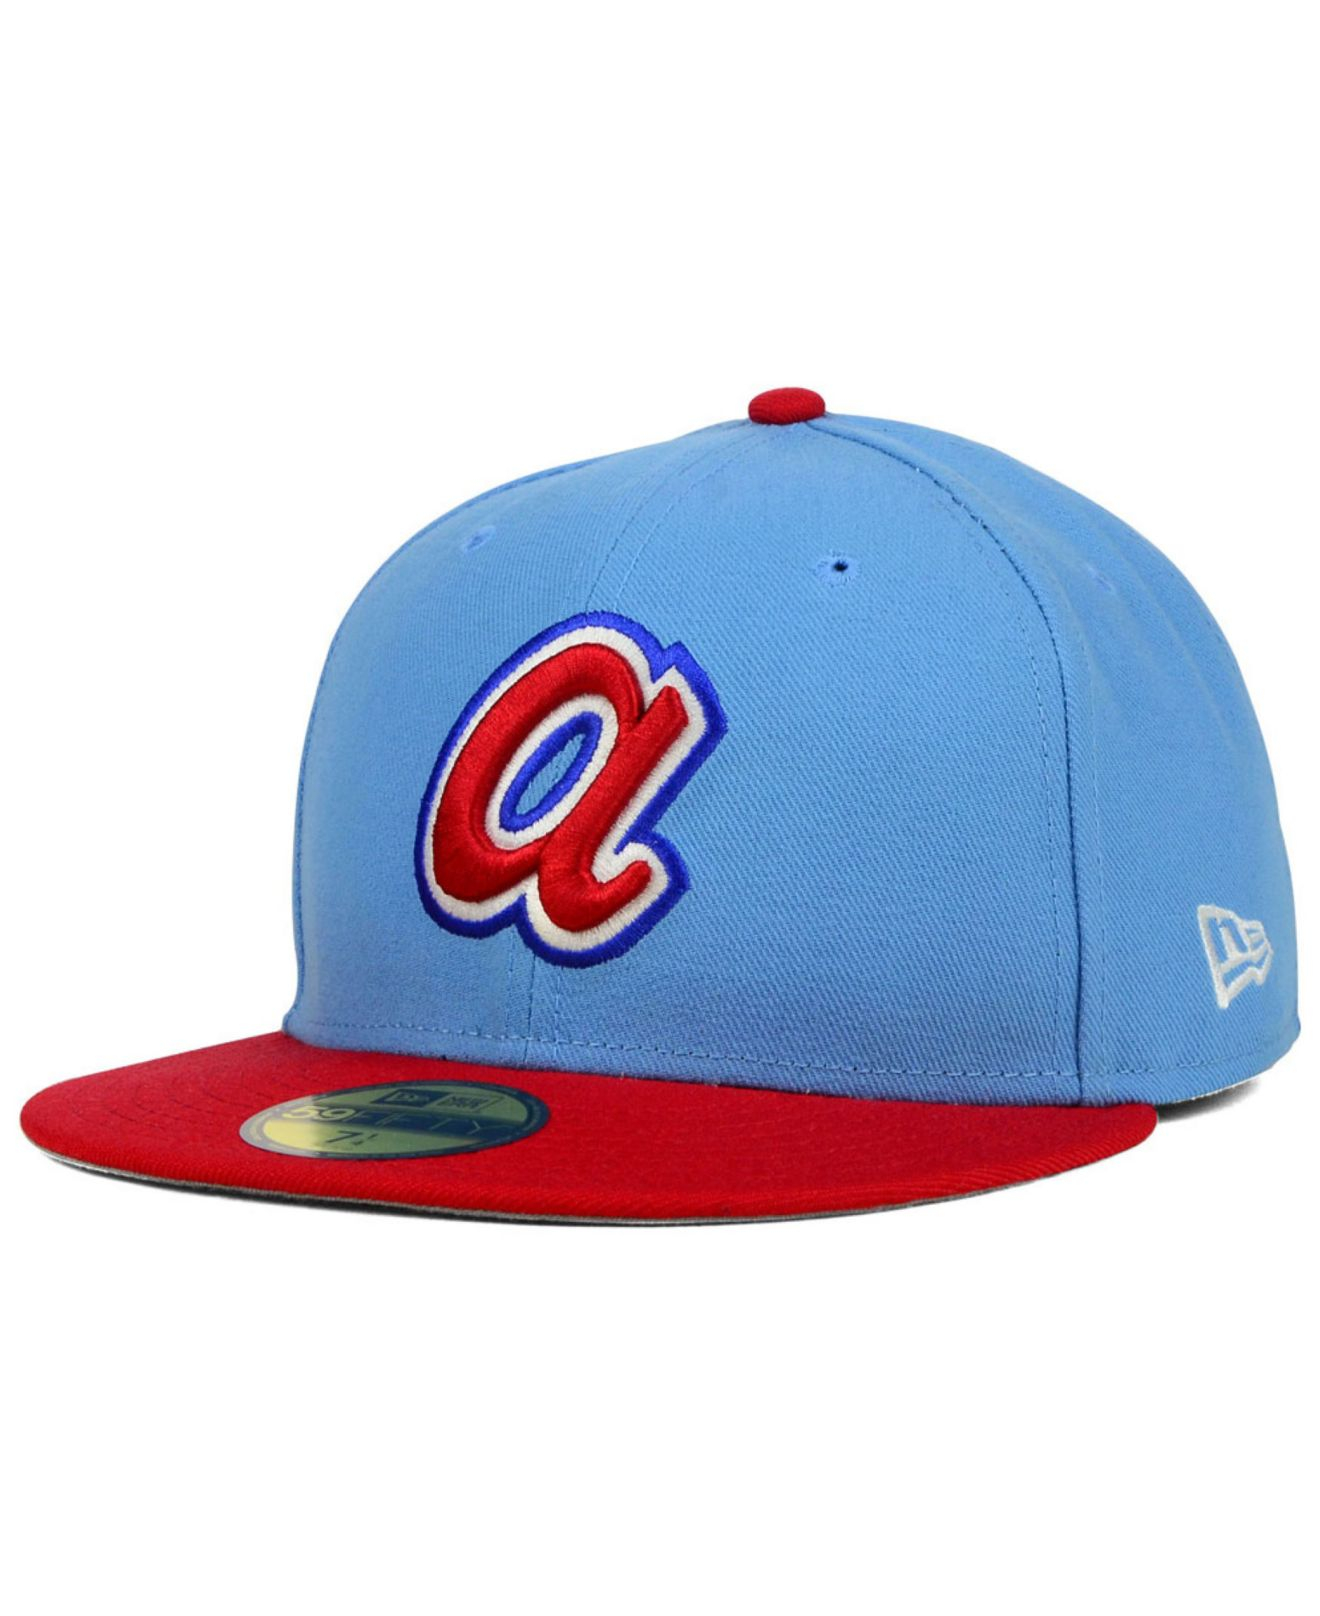 online store 01fc9 248ec ... spain lyst ktz atlanta braves cooperstown 2 tone 59fifty cap in blue  for men b522d 39571